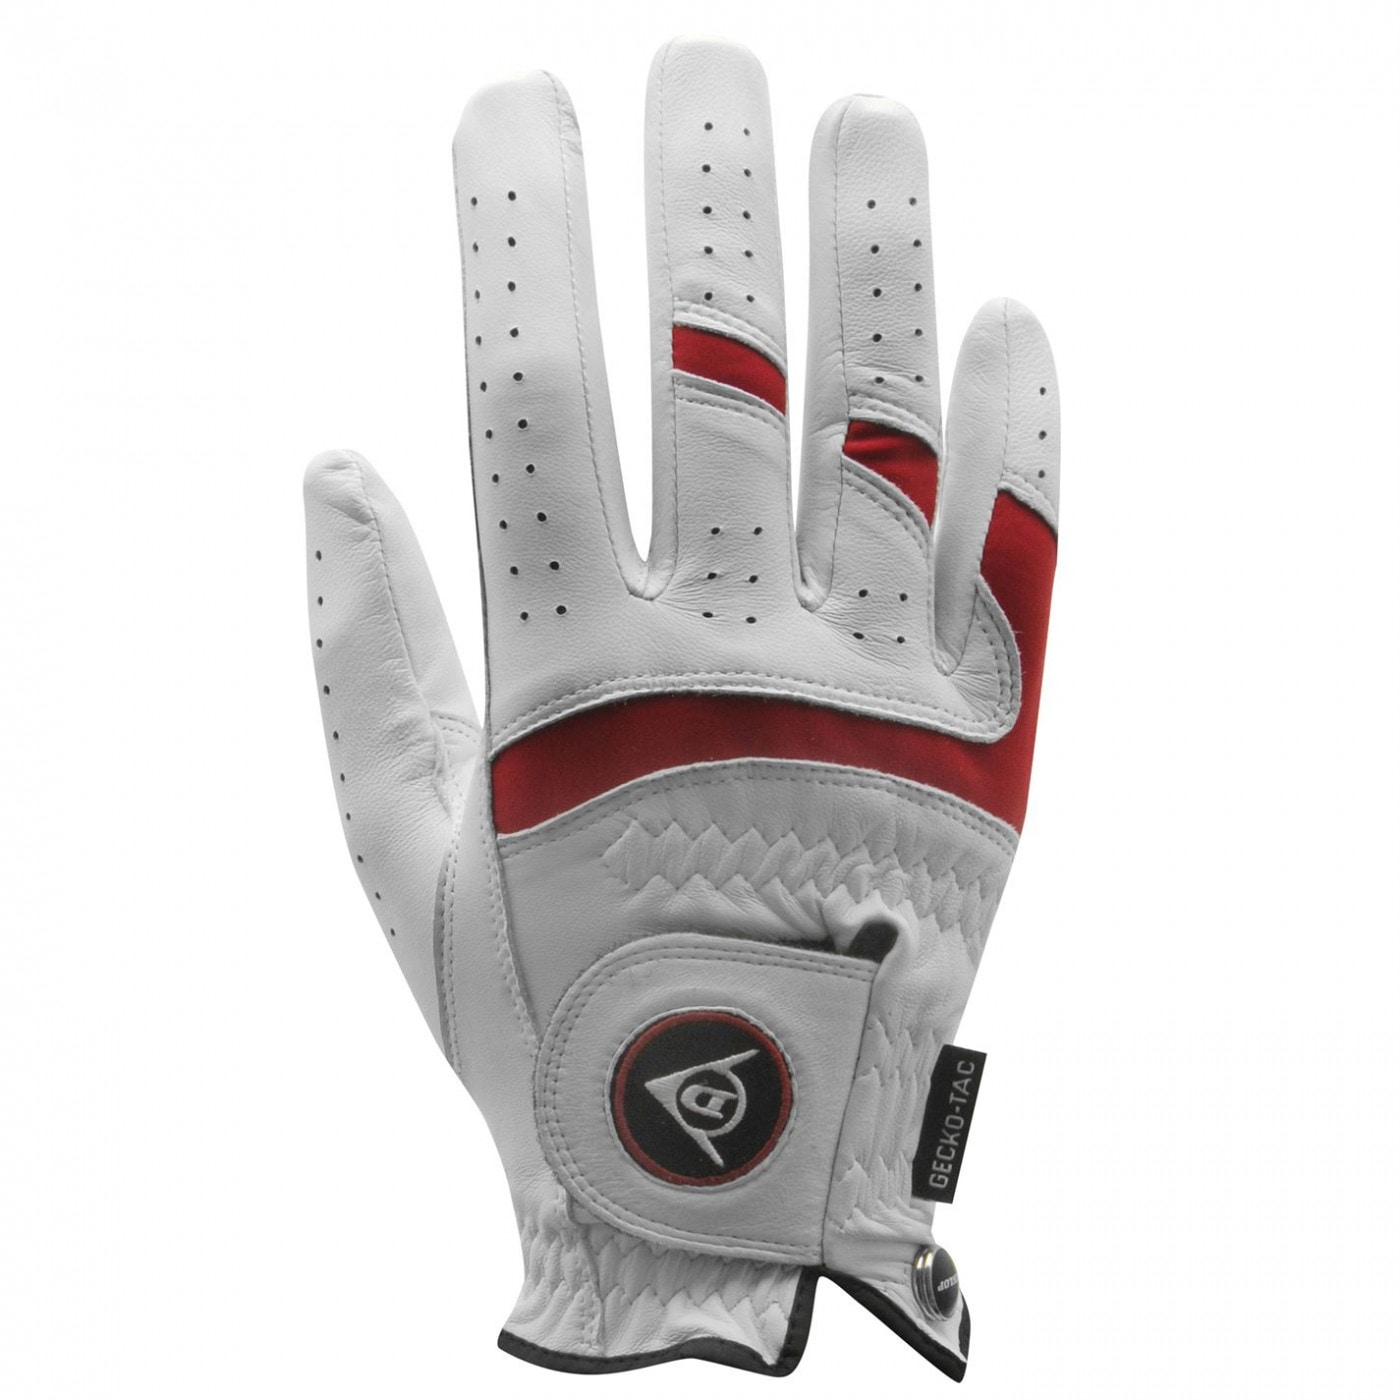 Dunlop DP1 Leather RH Leather Golf Glove